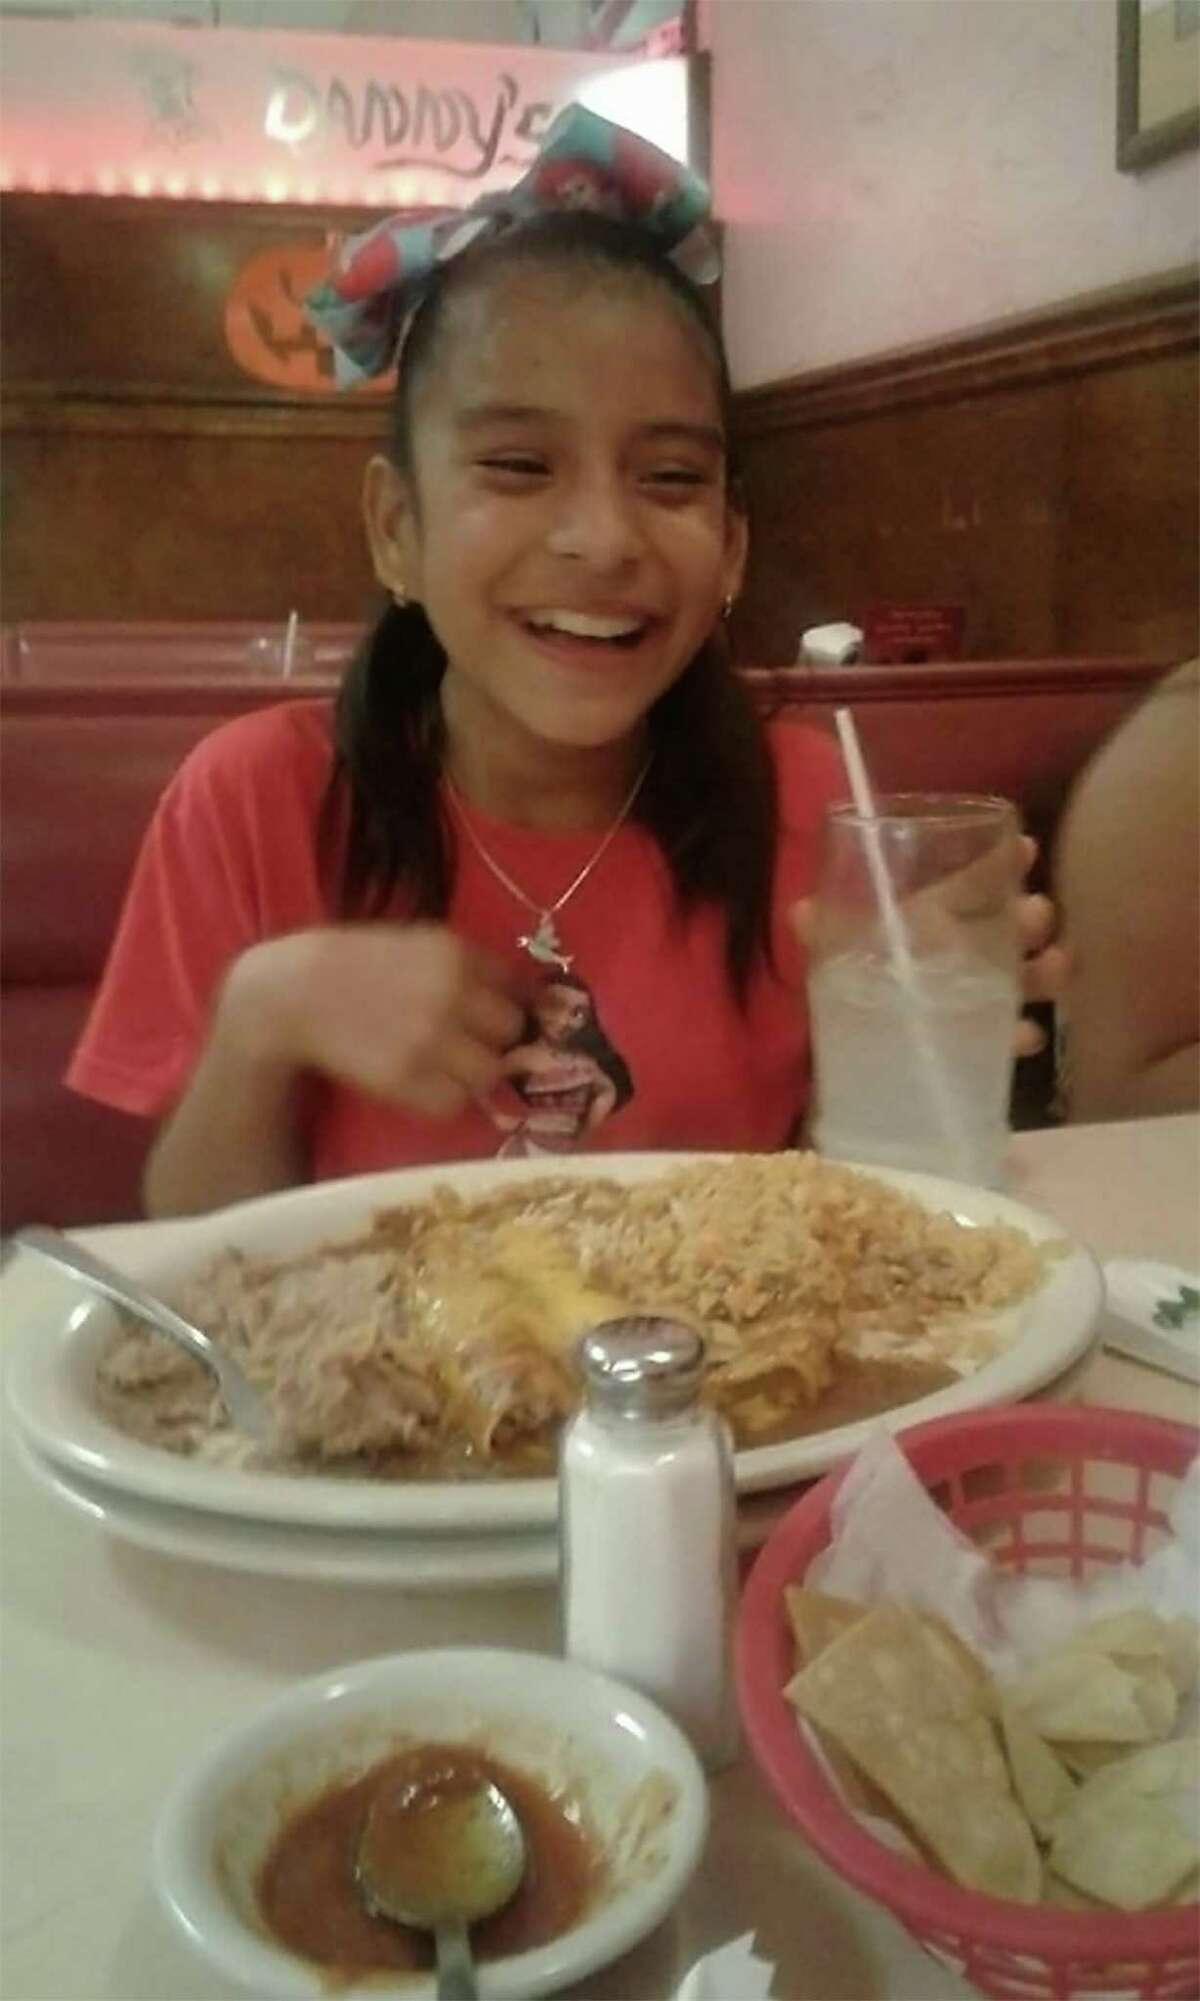 Rosemarie Hernandez, 10, who underwent gall bladder surgery in a Corpus Christi hospital, does not have legal immigrant status and may be sent to a detention facility after being released from the hospital. She faces deportation with her mother, Felipa Delacruz, who also lacks legal immigrant status. Hernandez also has been diagnosed with cerebral palsy.